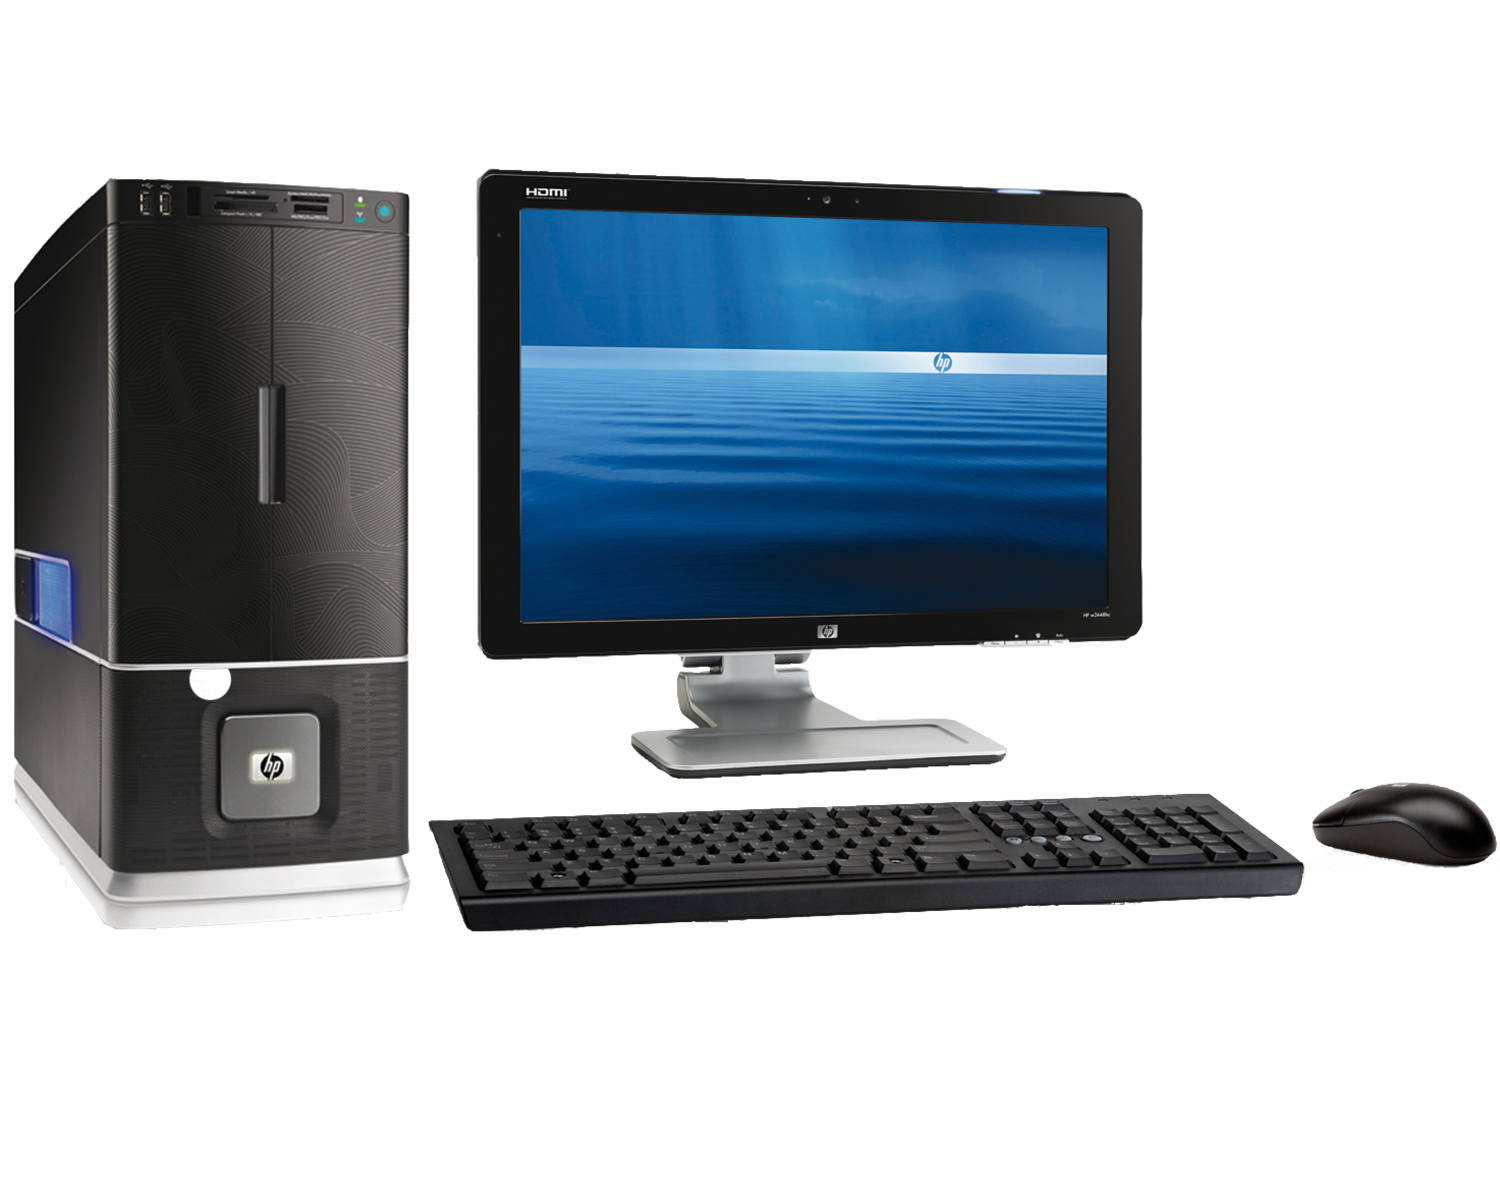 computer case, monitor, mouse, keyboard png